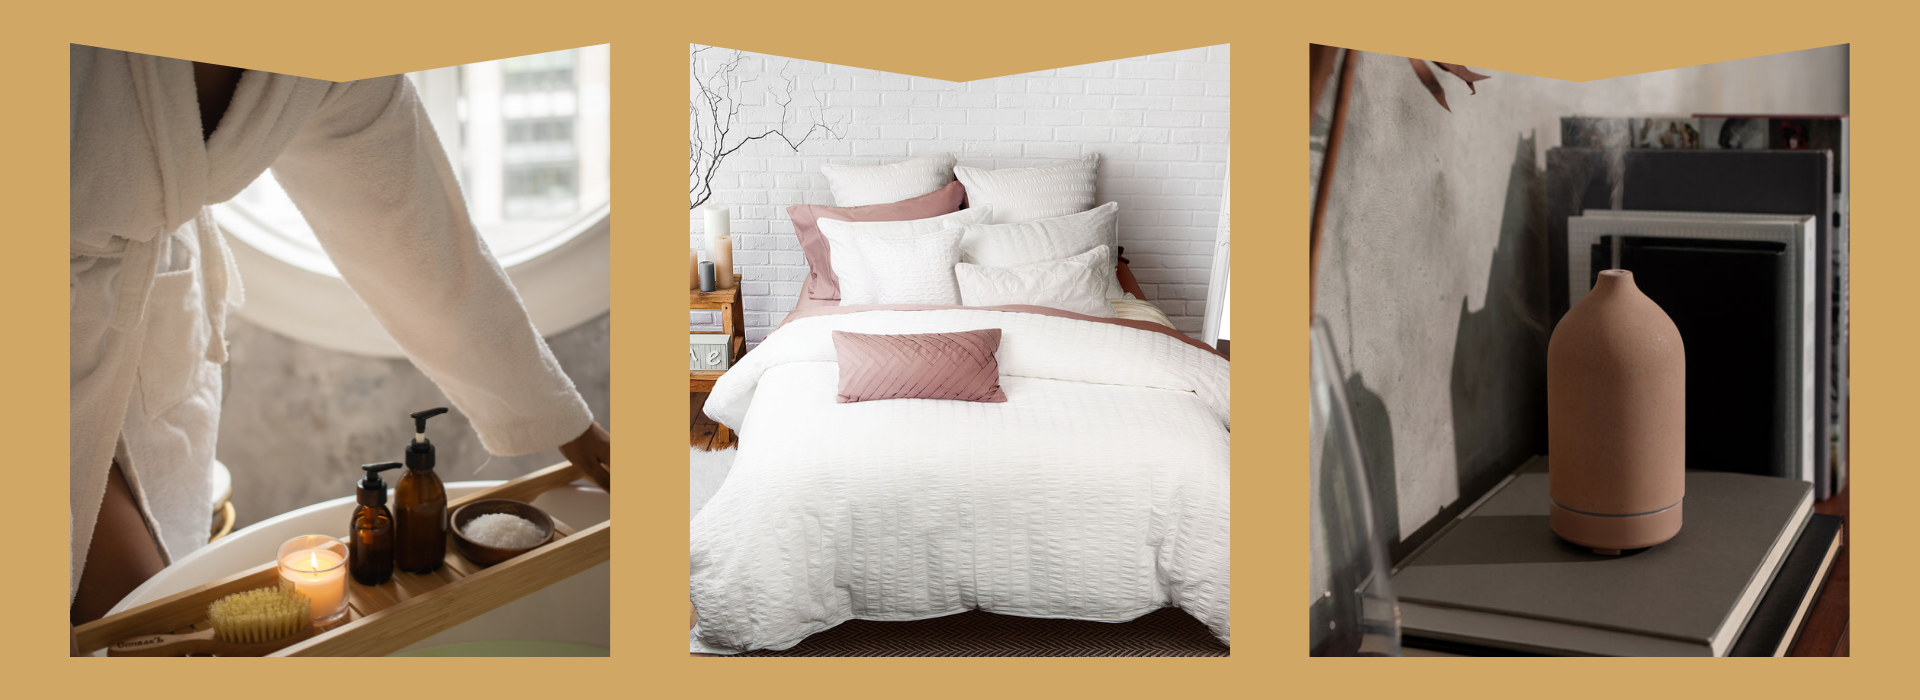 Fluffy robe, cozy bedding, and diffuser to help you rest and relax